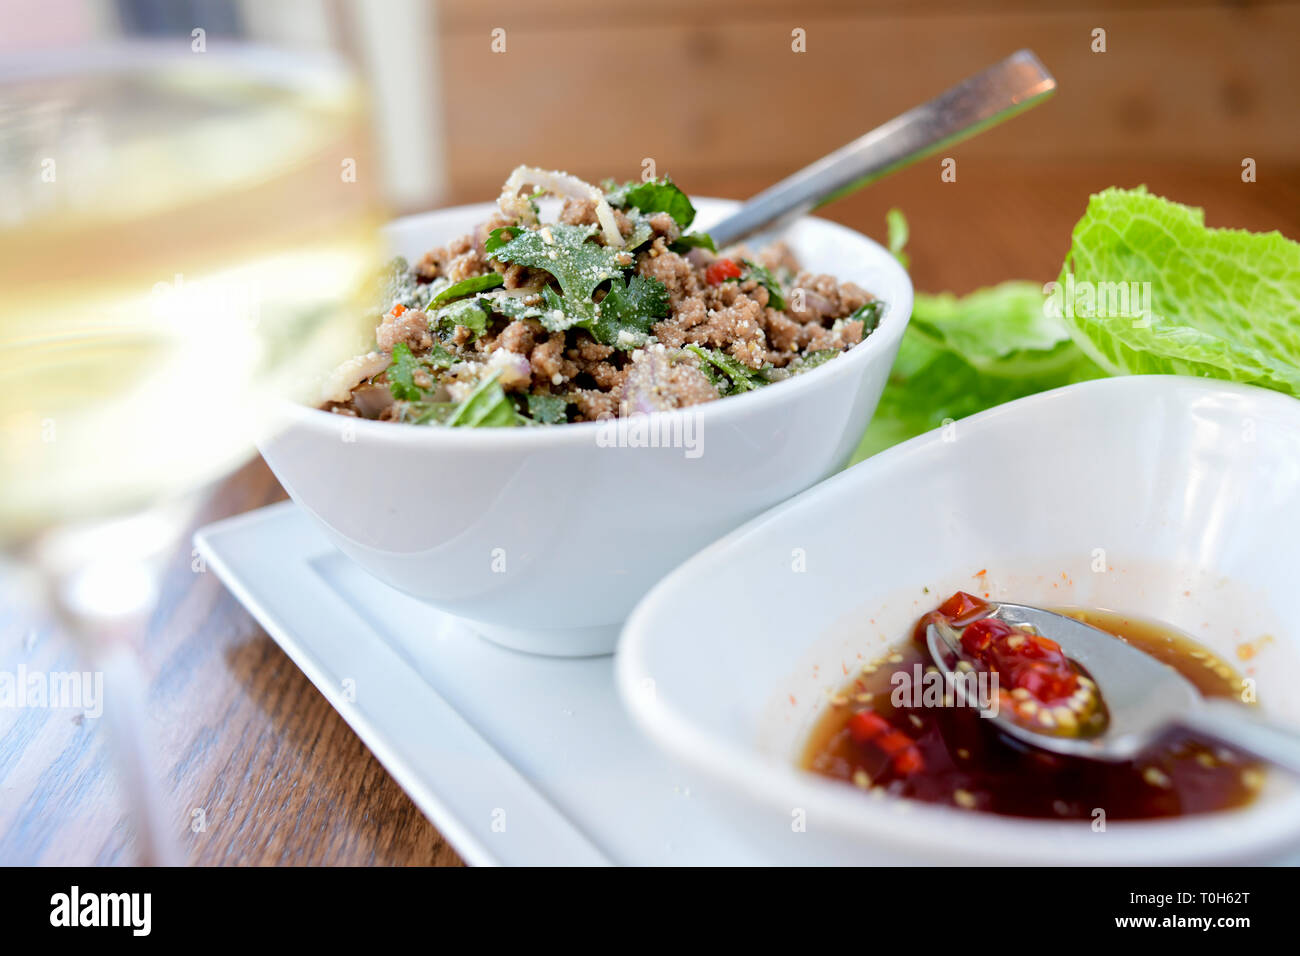 food-thai-dish-larb-with-pork-and-a-hot-chili-sauce-T0H62T.jpg